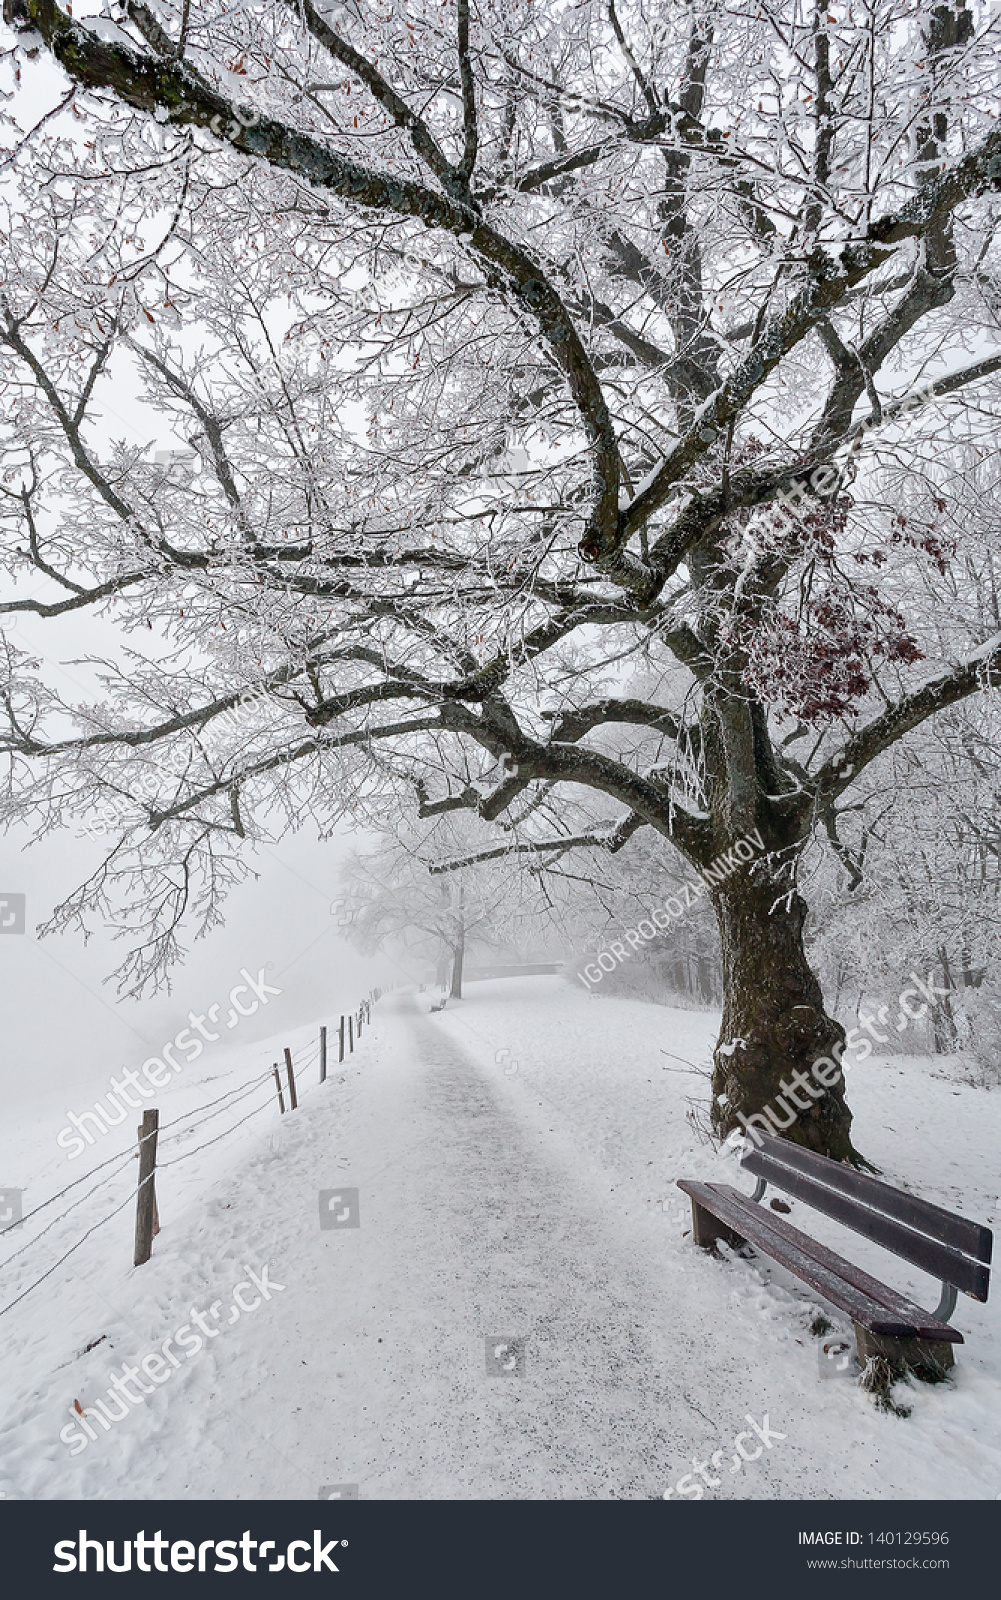 city park of st gallen in a foggy winter day stock photo 140129596 shutterstock. Black Bedroom Furniture Sets. Home Design Ideas